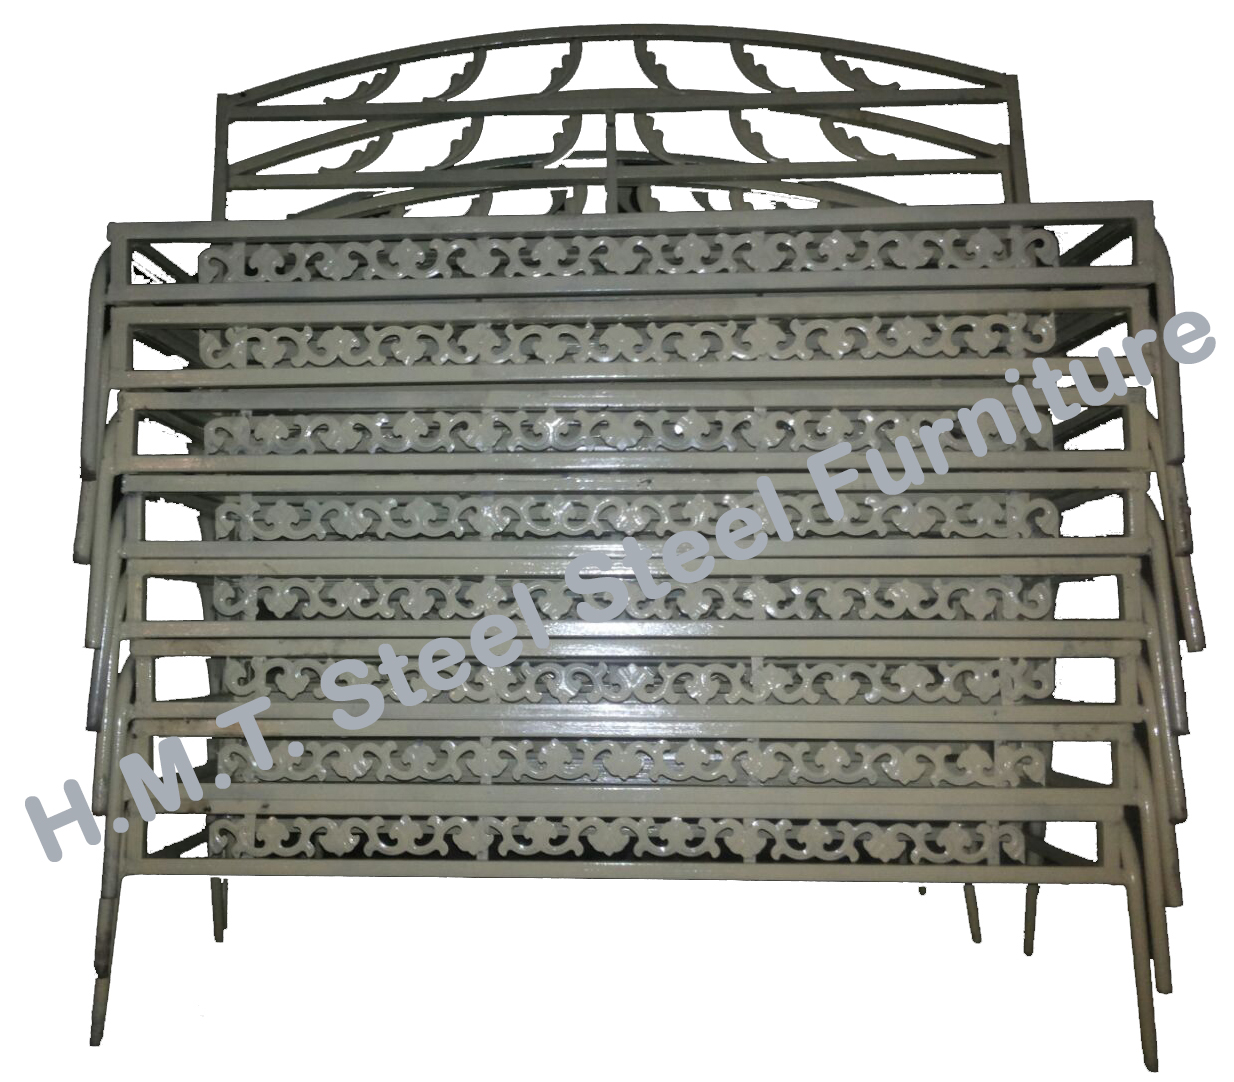 H m t steel furniture gallery for Gallery furniture